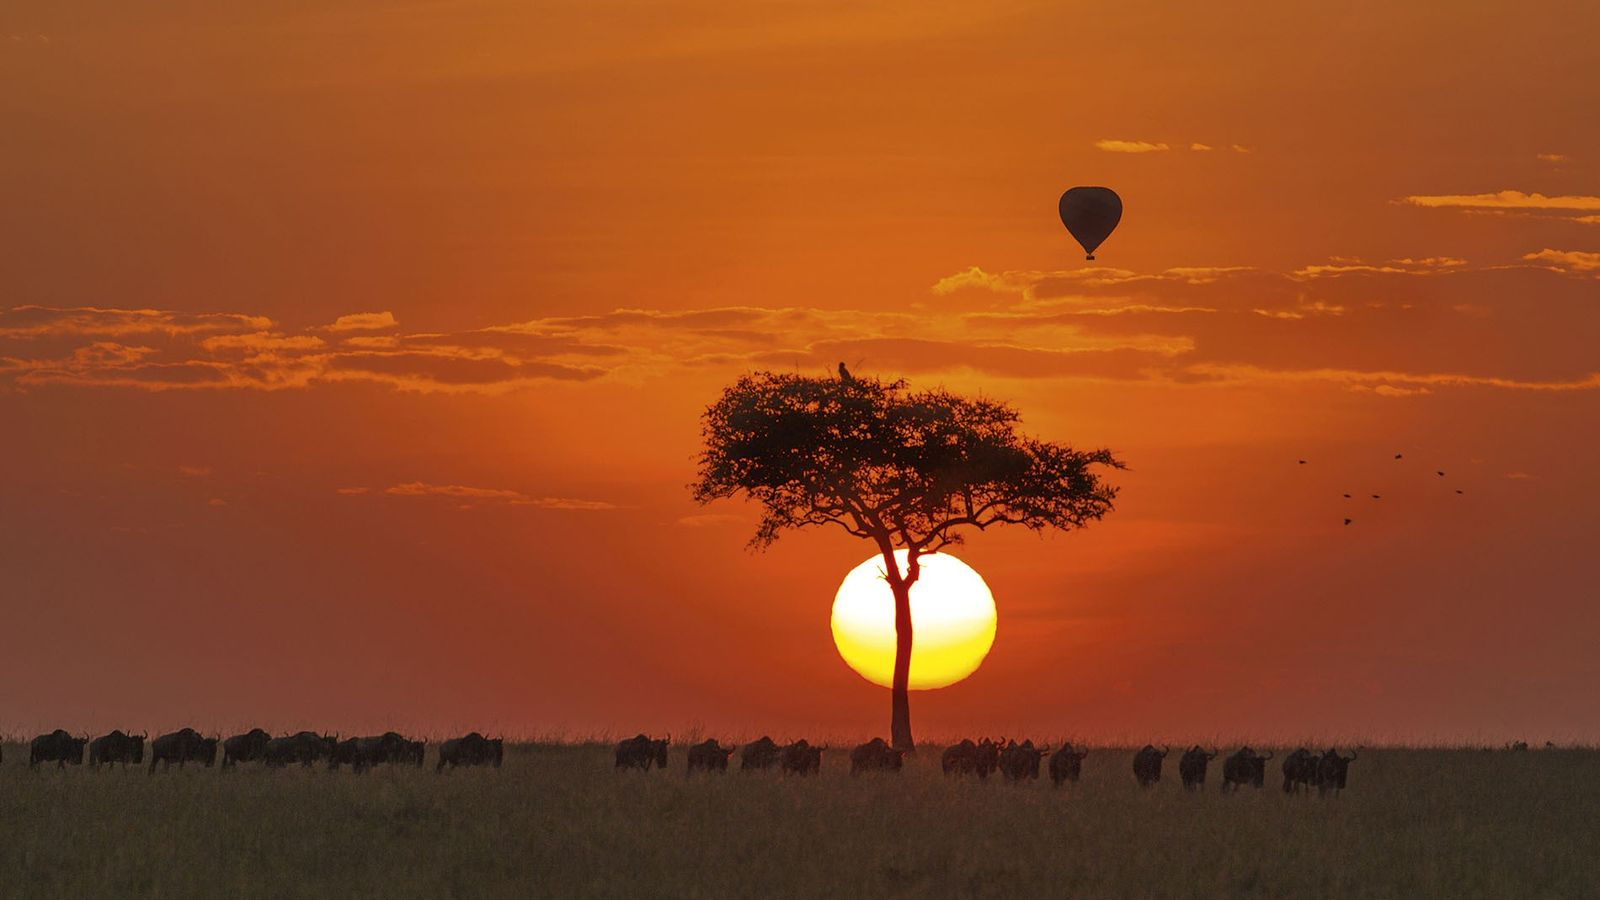 Dawn on the Maasai Mara, Kenya.